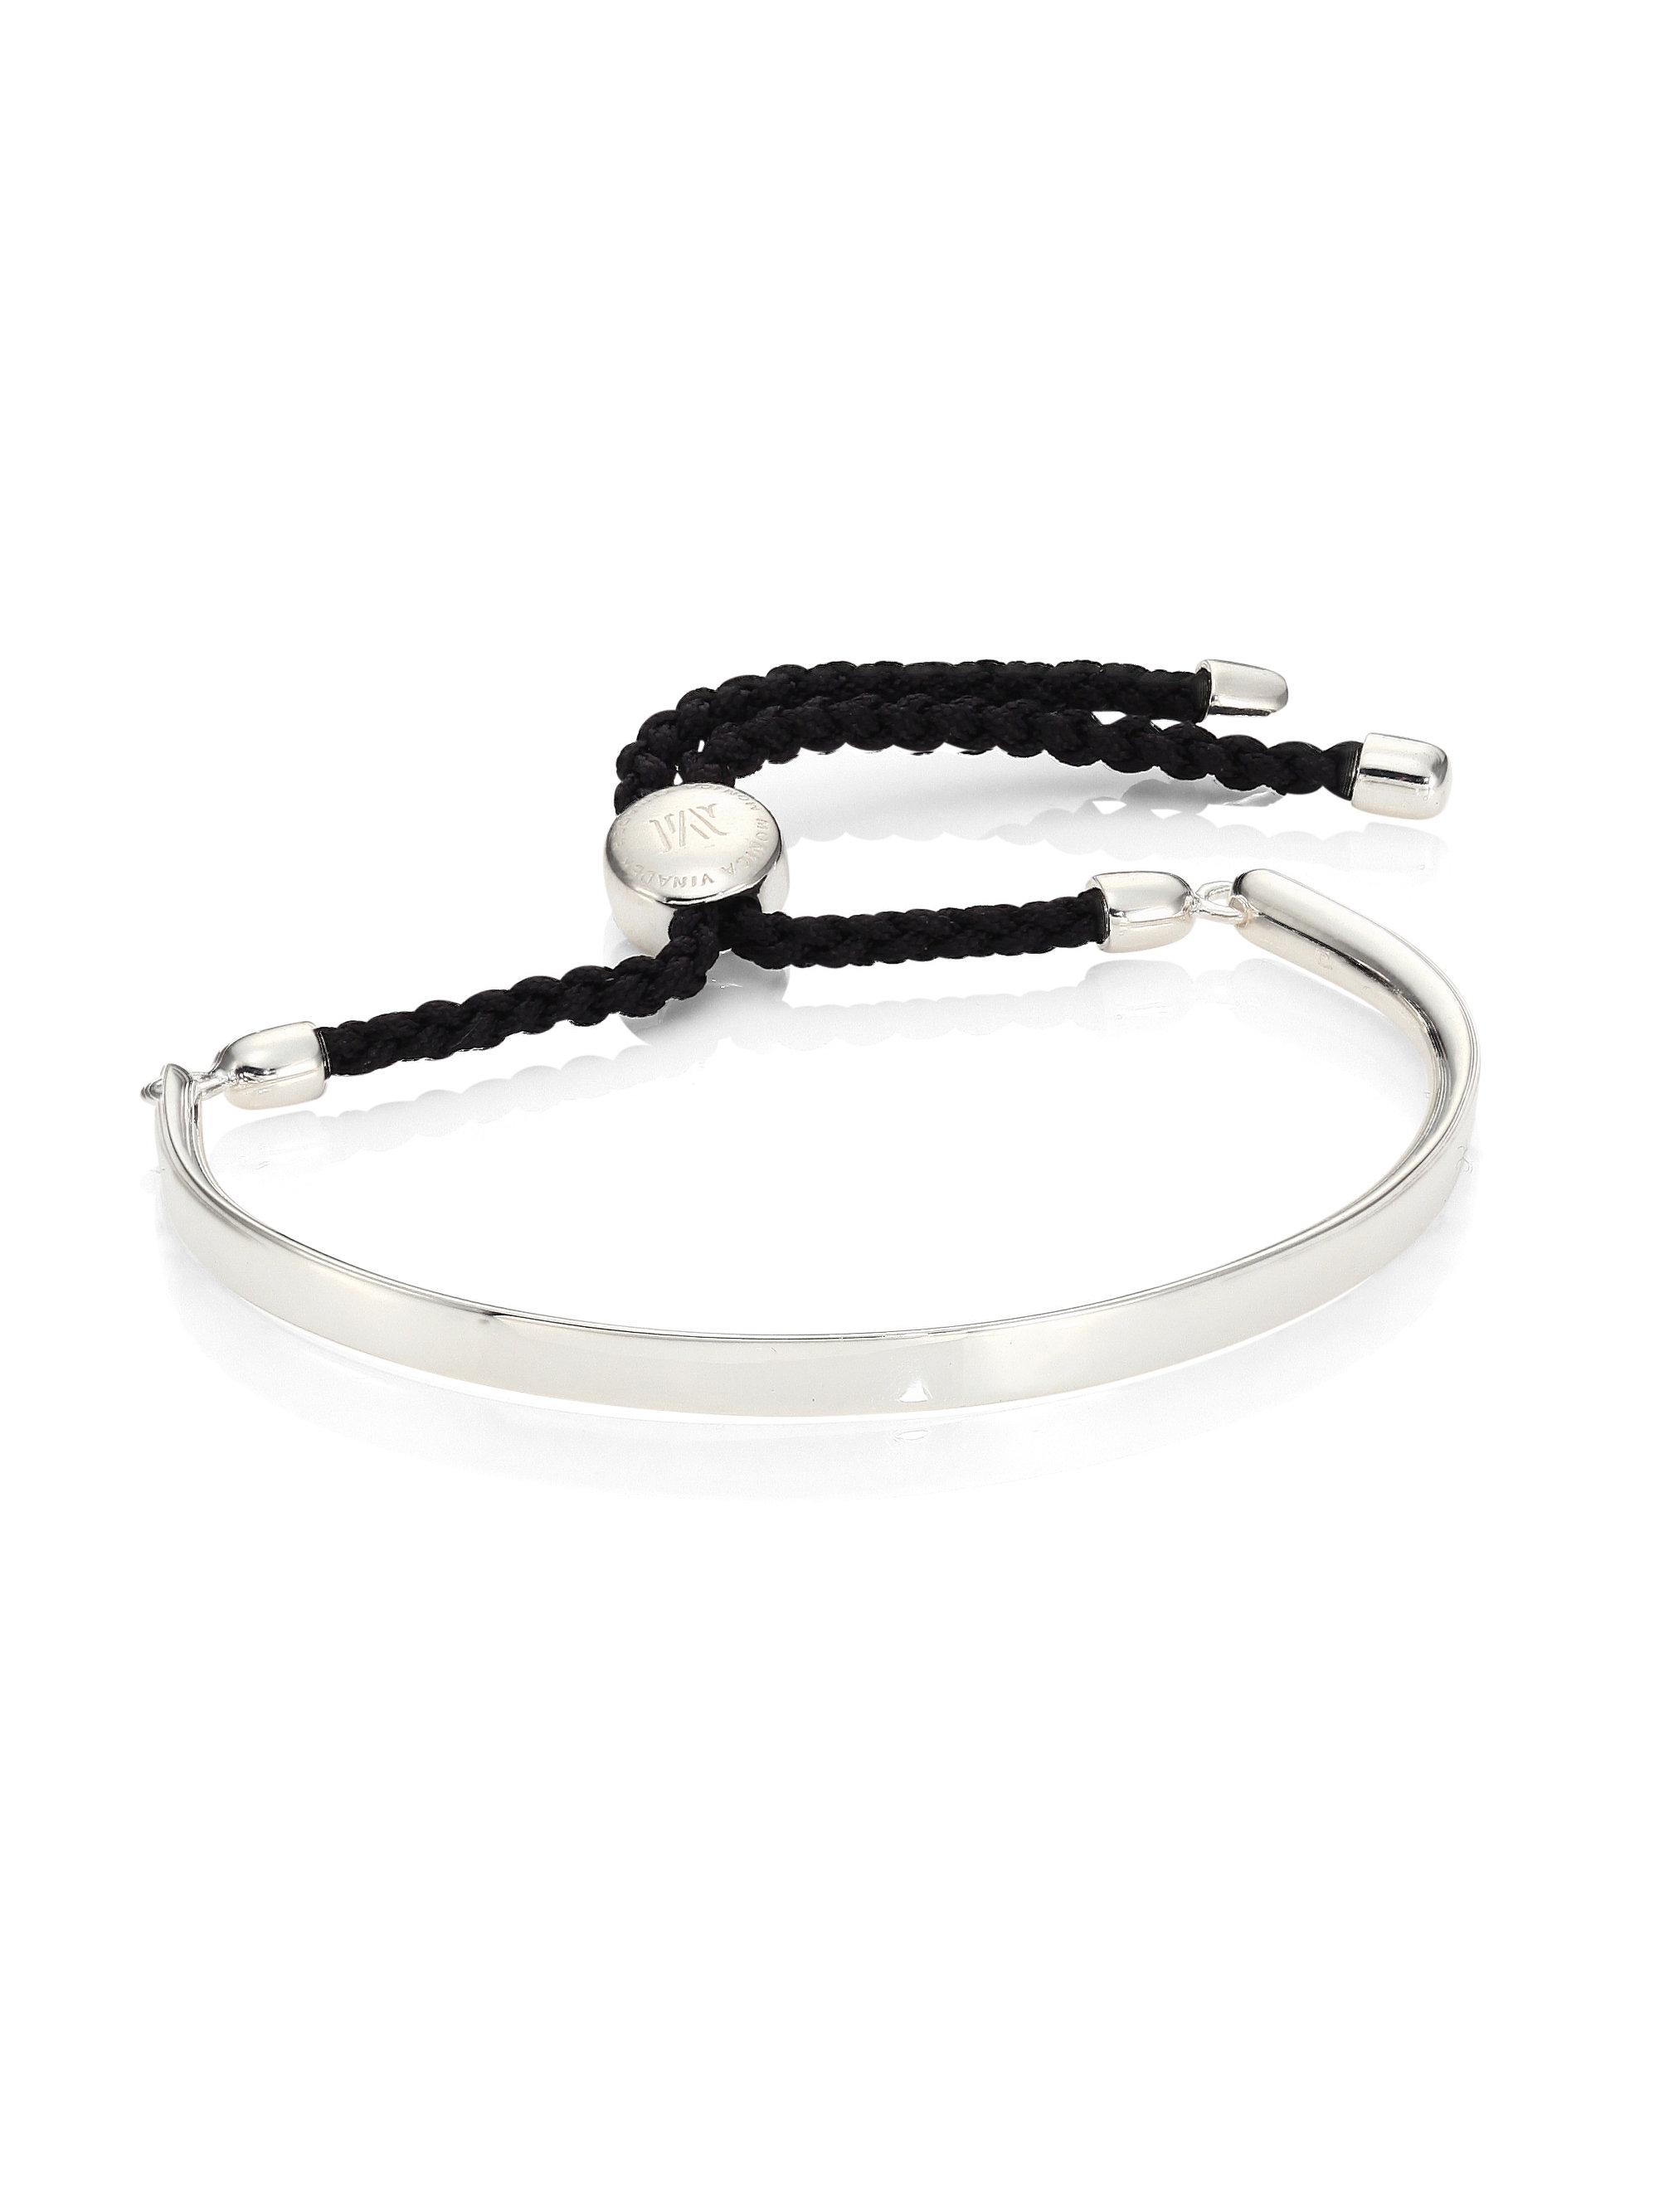 Fiji Friendship Bracelet - Black, Sterling Silver Monica Vinader